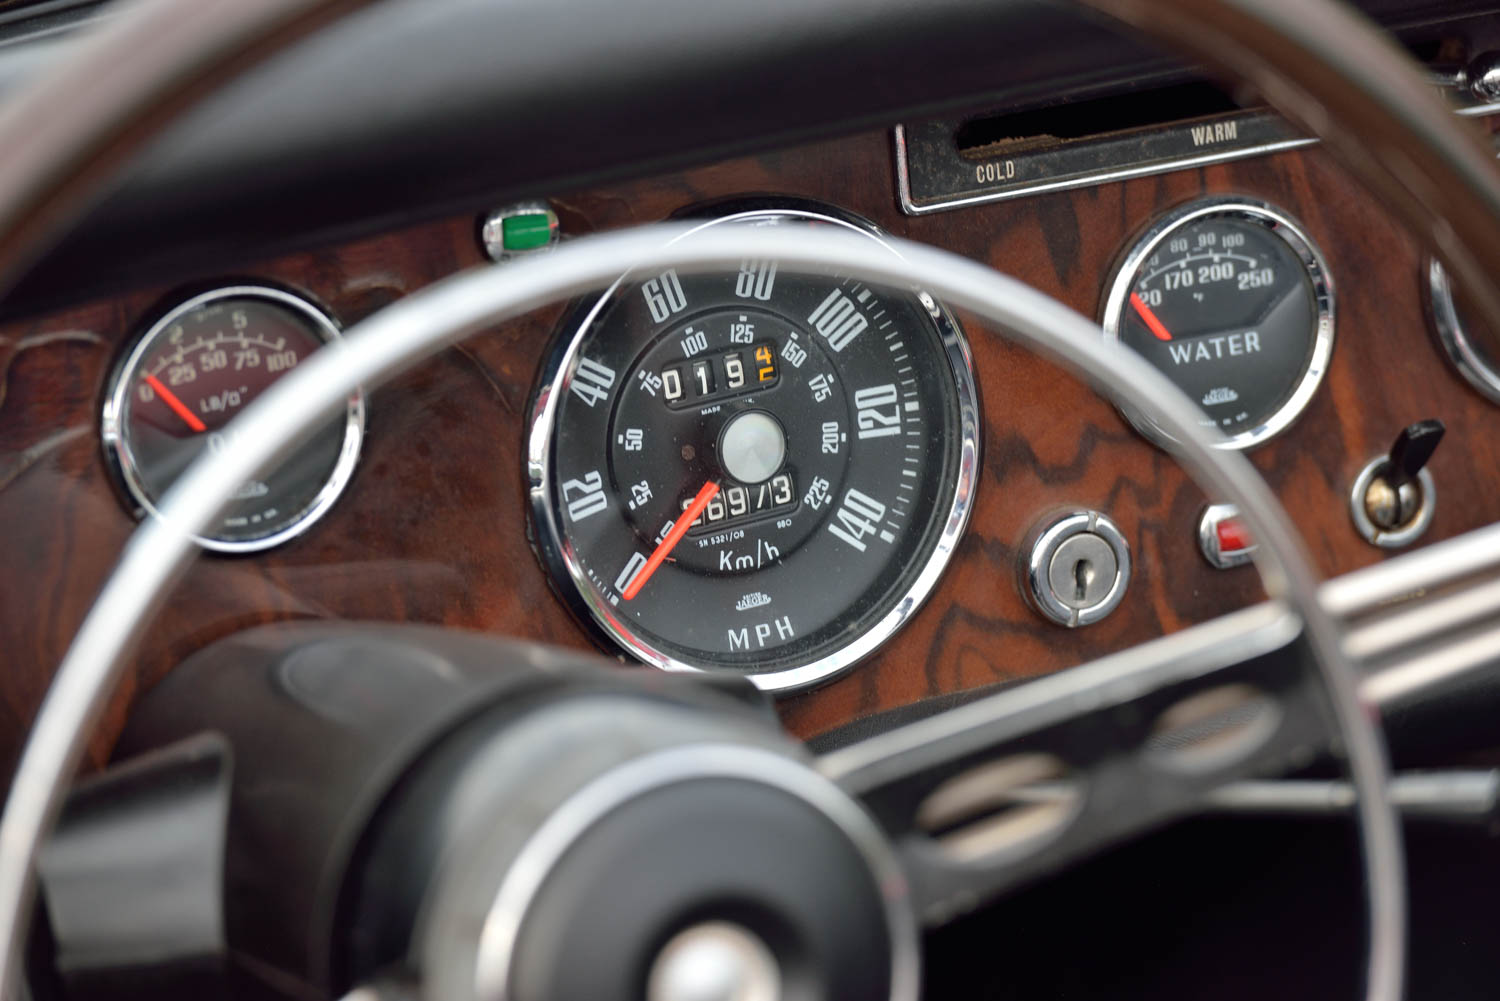 1965 Sunbeam Tiger MKI gauges